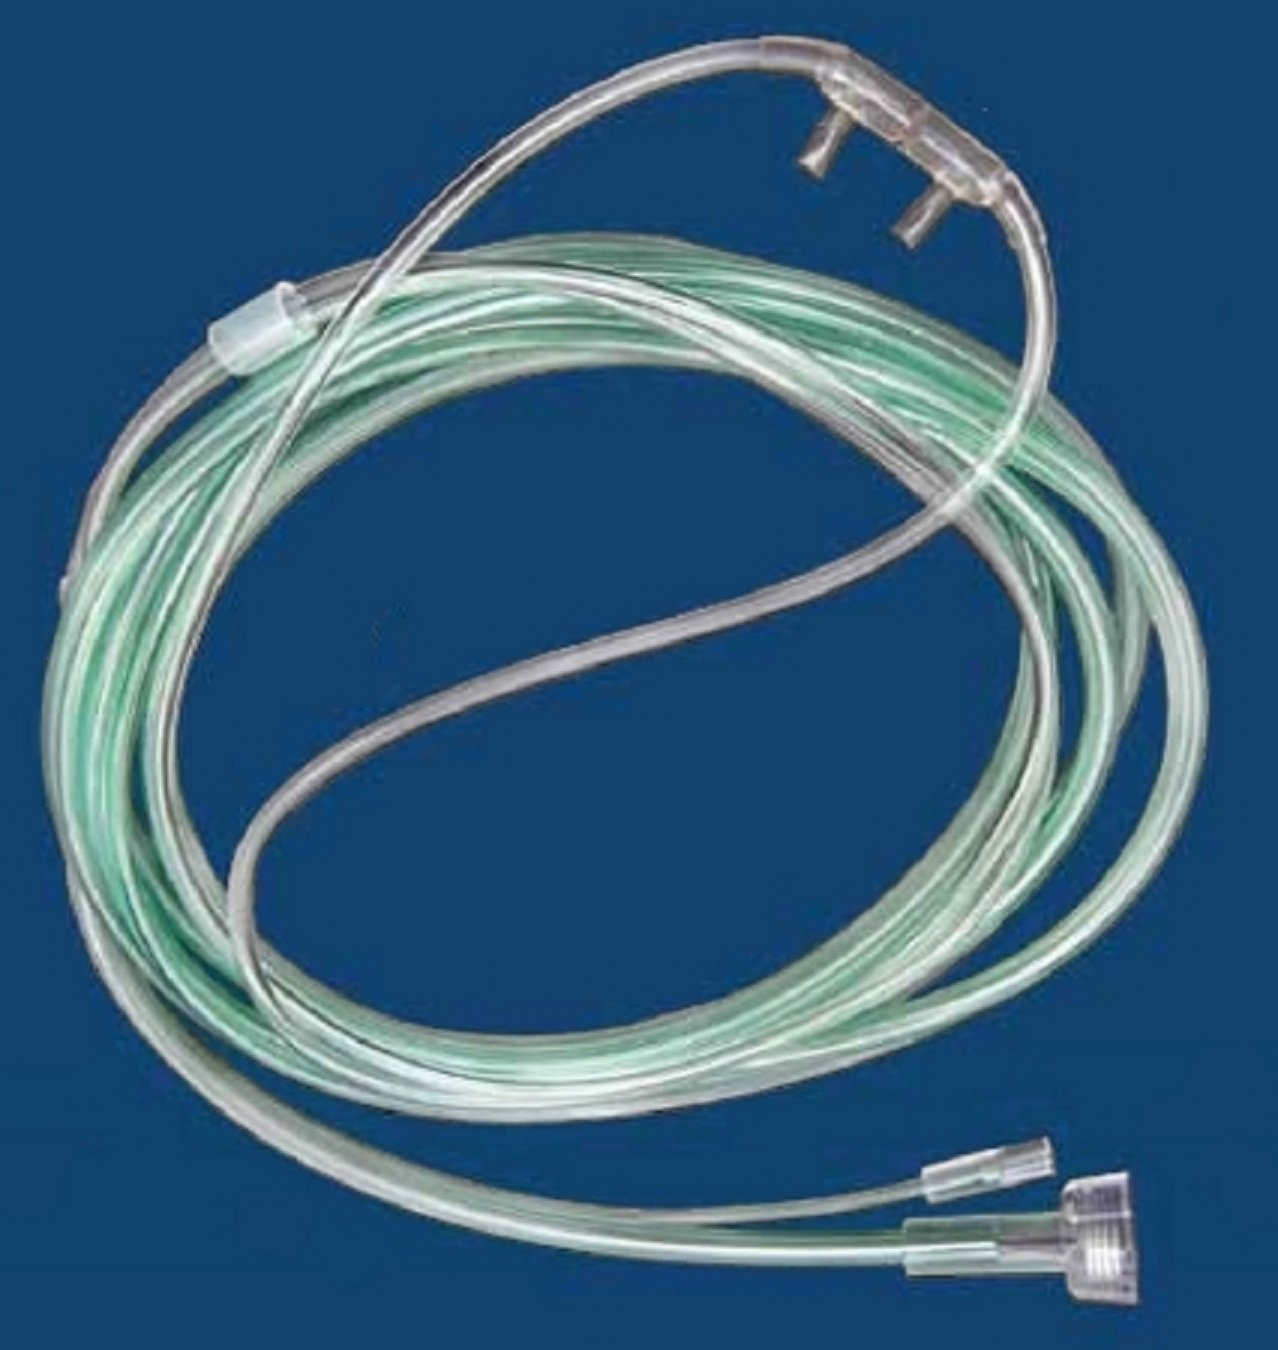 McKesson 16-0441 Co2 Sampling Nasal Cannula, Pediatric, O2/Co2 Sampling Line with Male Luer, 2'' Pigtail with Female Luer, 7' Length, 7' Length (Pack of 25)